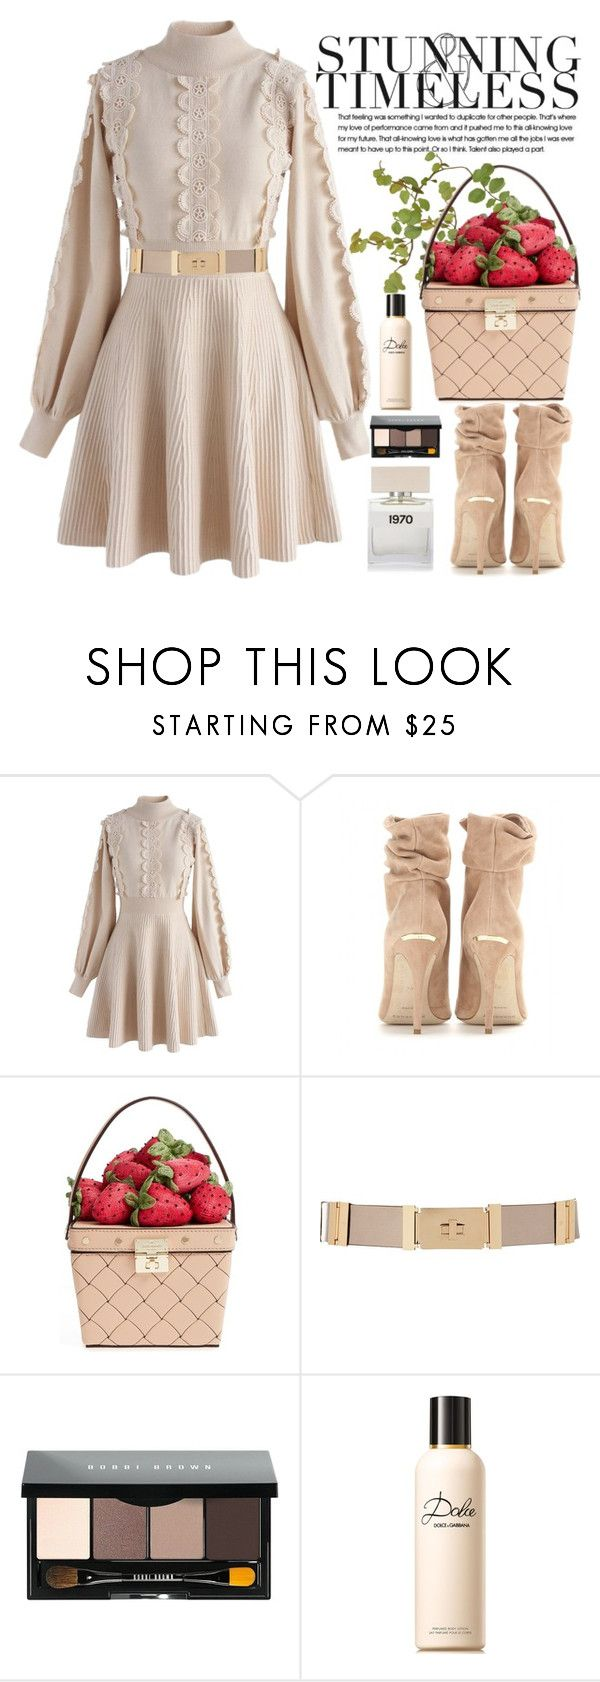 """Strawberry Fields"" by crblackflag on Polyvore featuring Chicwish, Burberry, Kate Spade, River Island, MANGO, Bobbi Brown Cosmetics, Dolce&Gabbana, Bella Freud and knitdress"